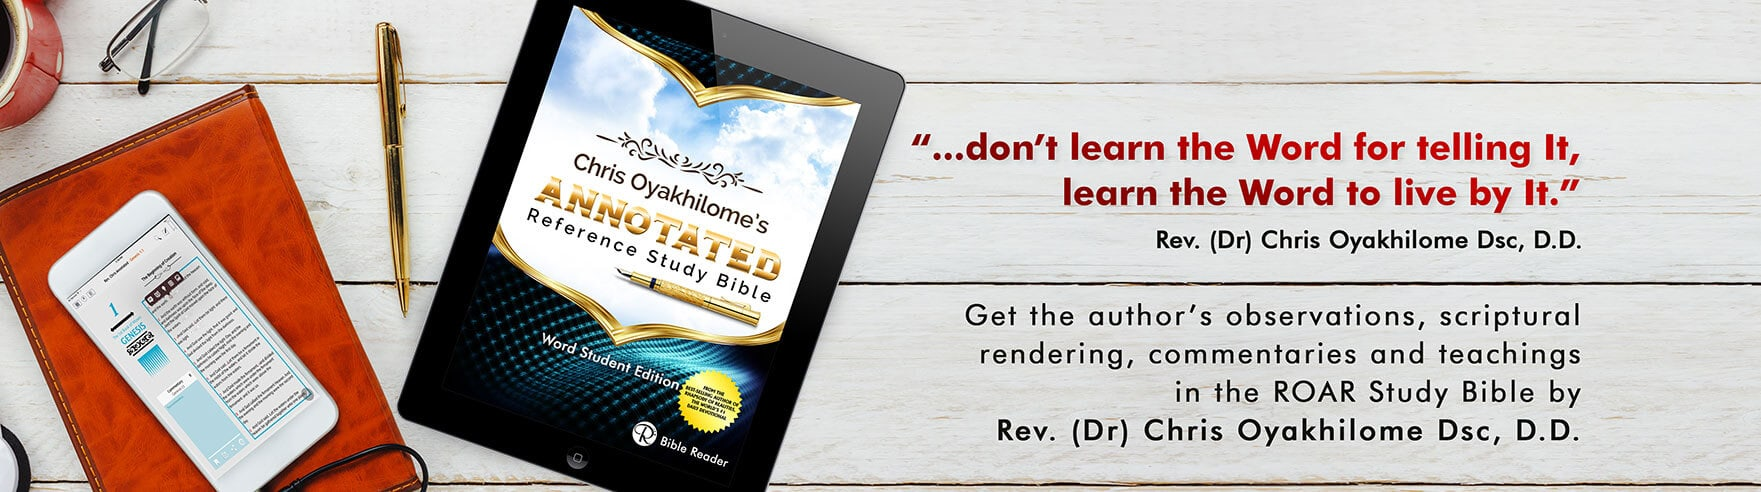 DOWNLOAD YOUR FREE RHAPSODY OF REALITIES PLUS STUDY BIBLE - Good